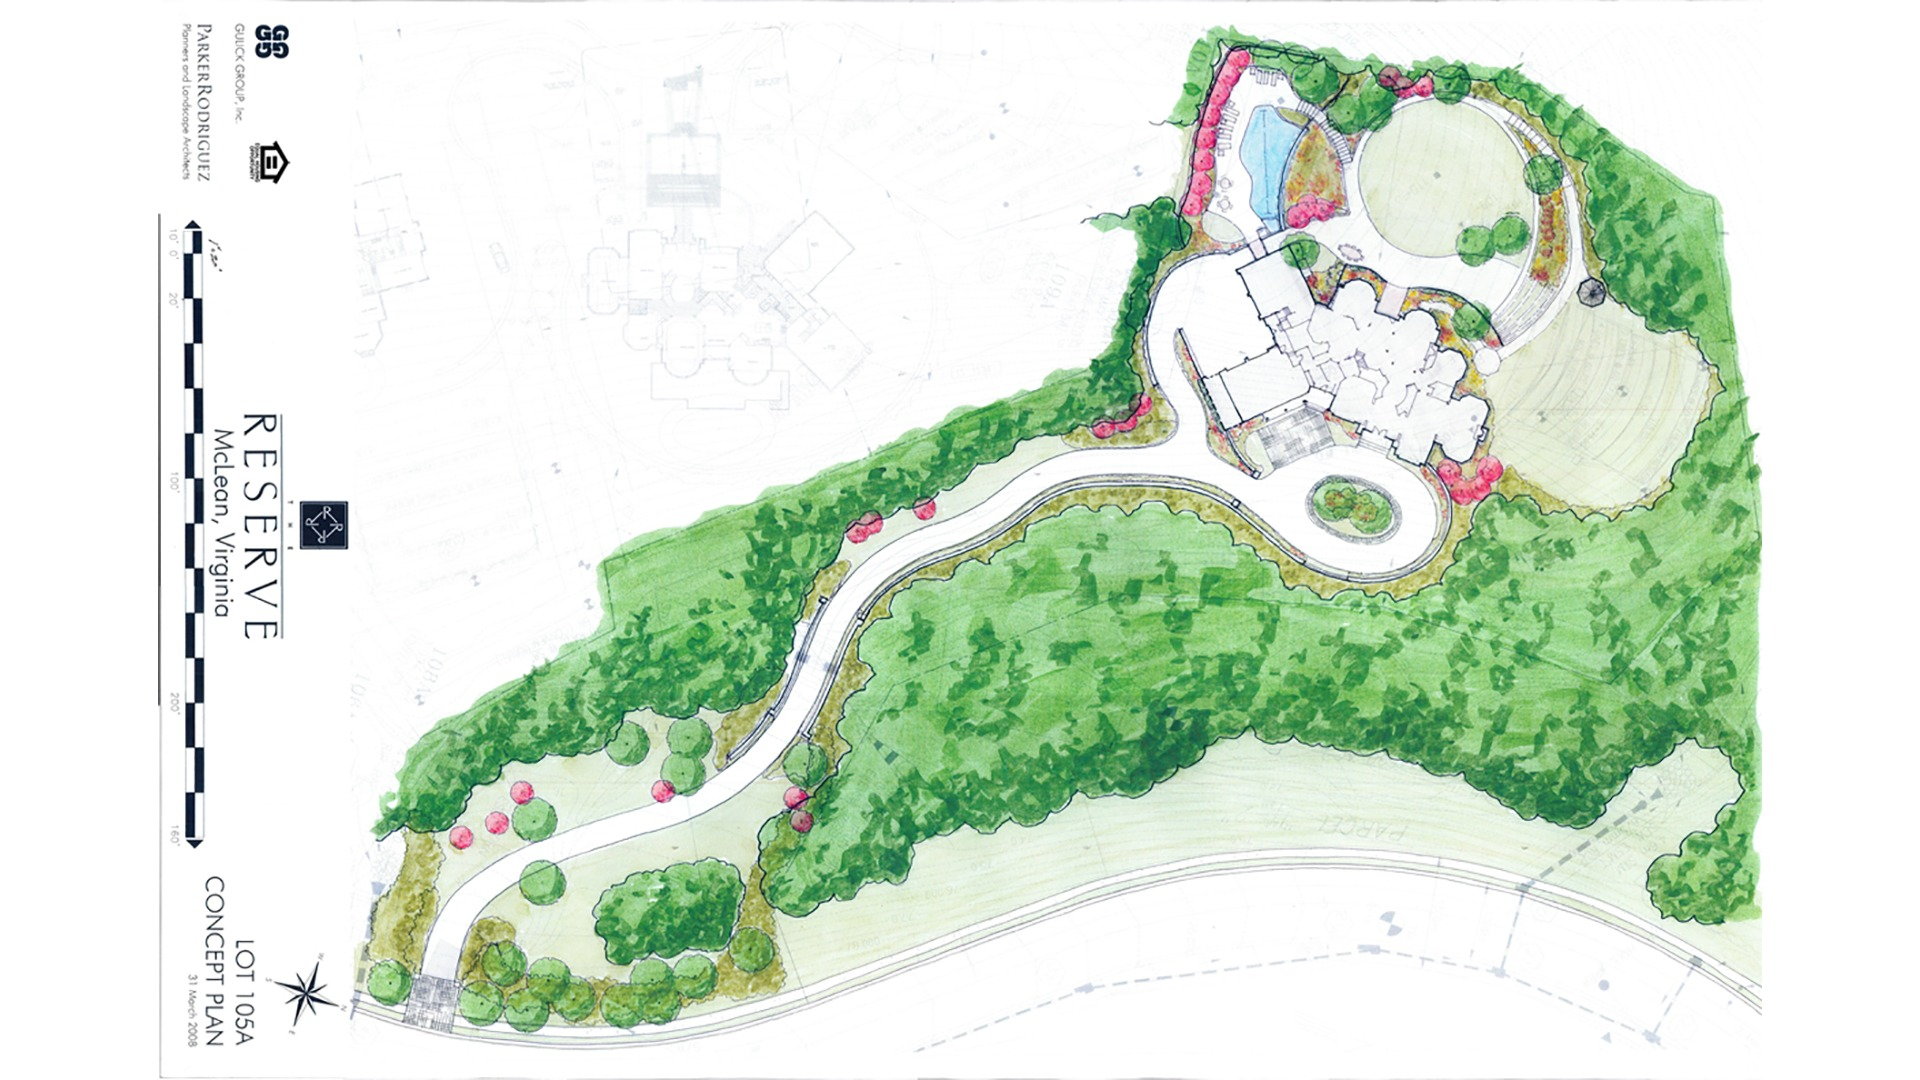 A Landscaping Concept from the Reserve